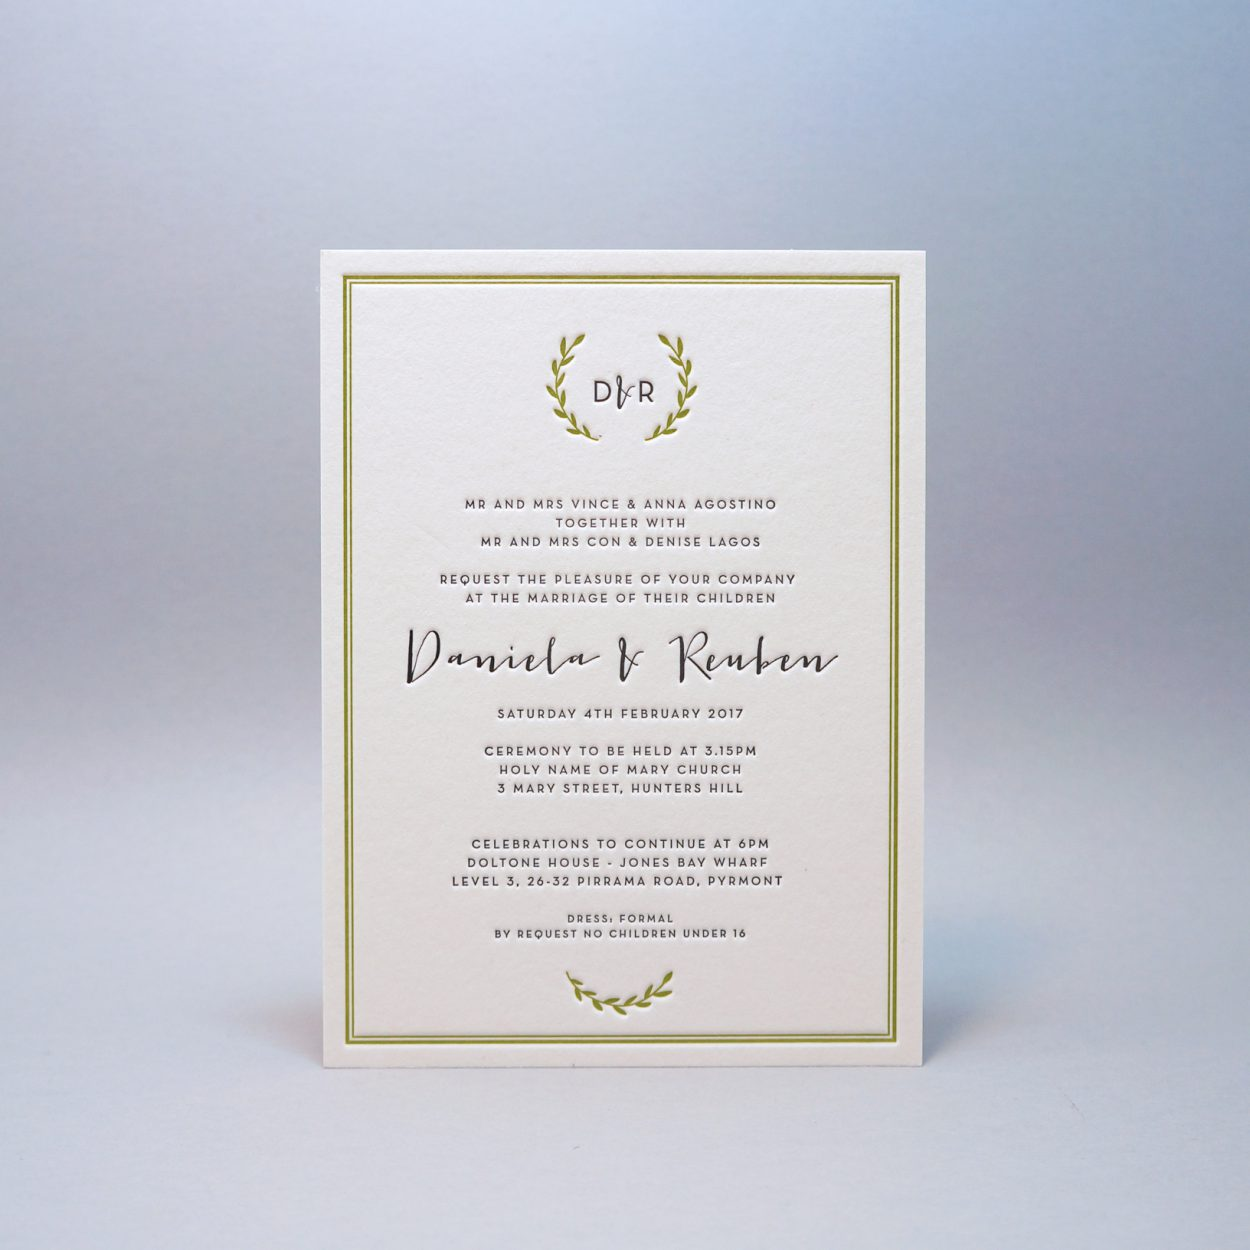 Letterpress-wedding-invitations-green-cordenons-wild lettra-wreath